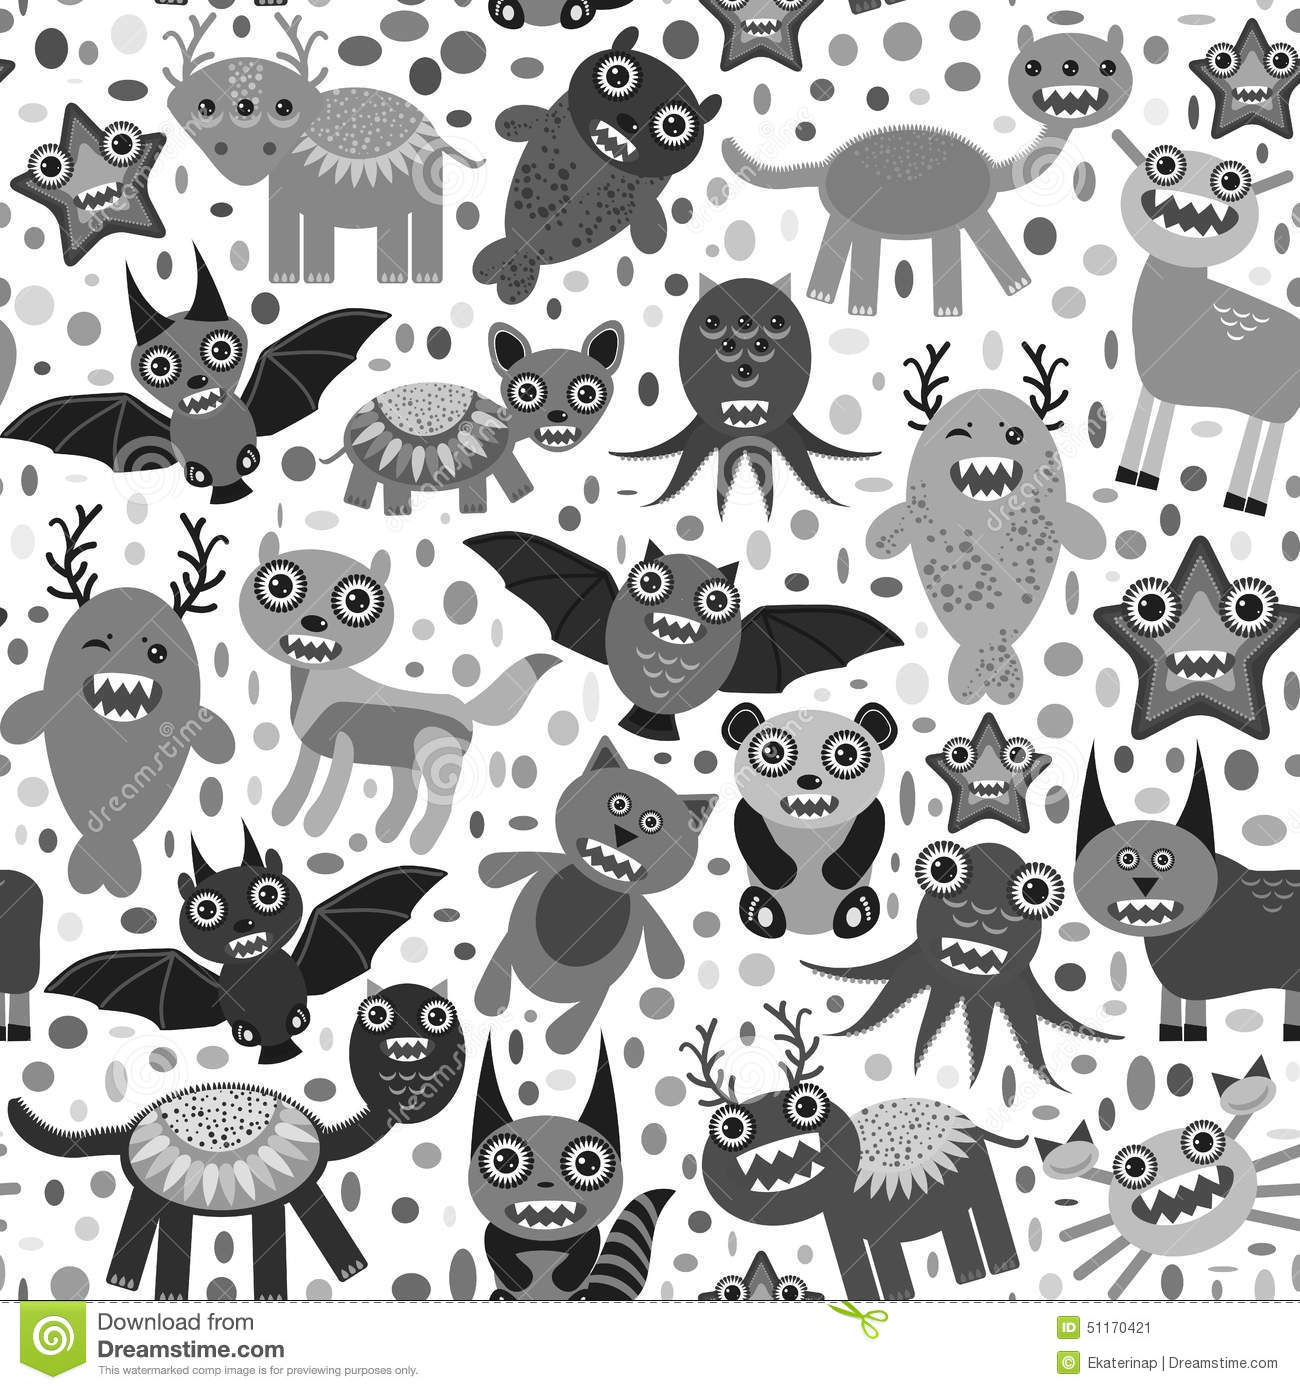 Cute Cartoon Monsters Set Seamless Pattern On White Background